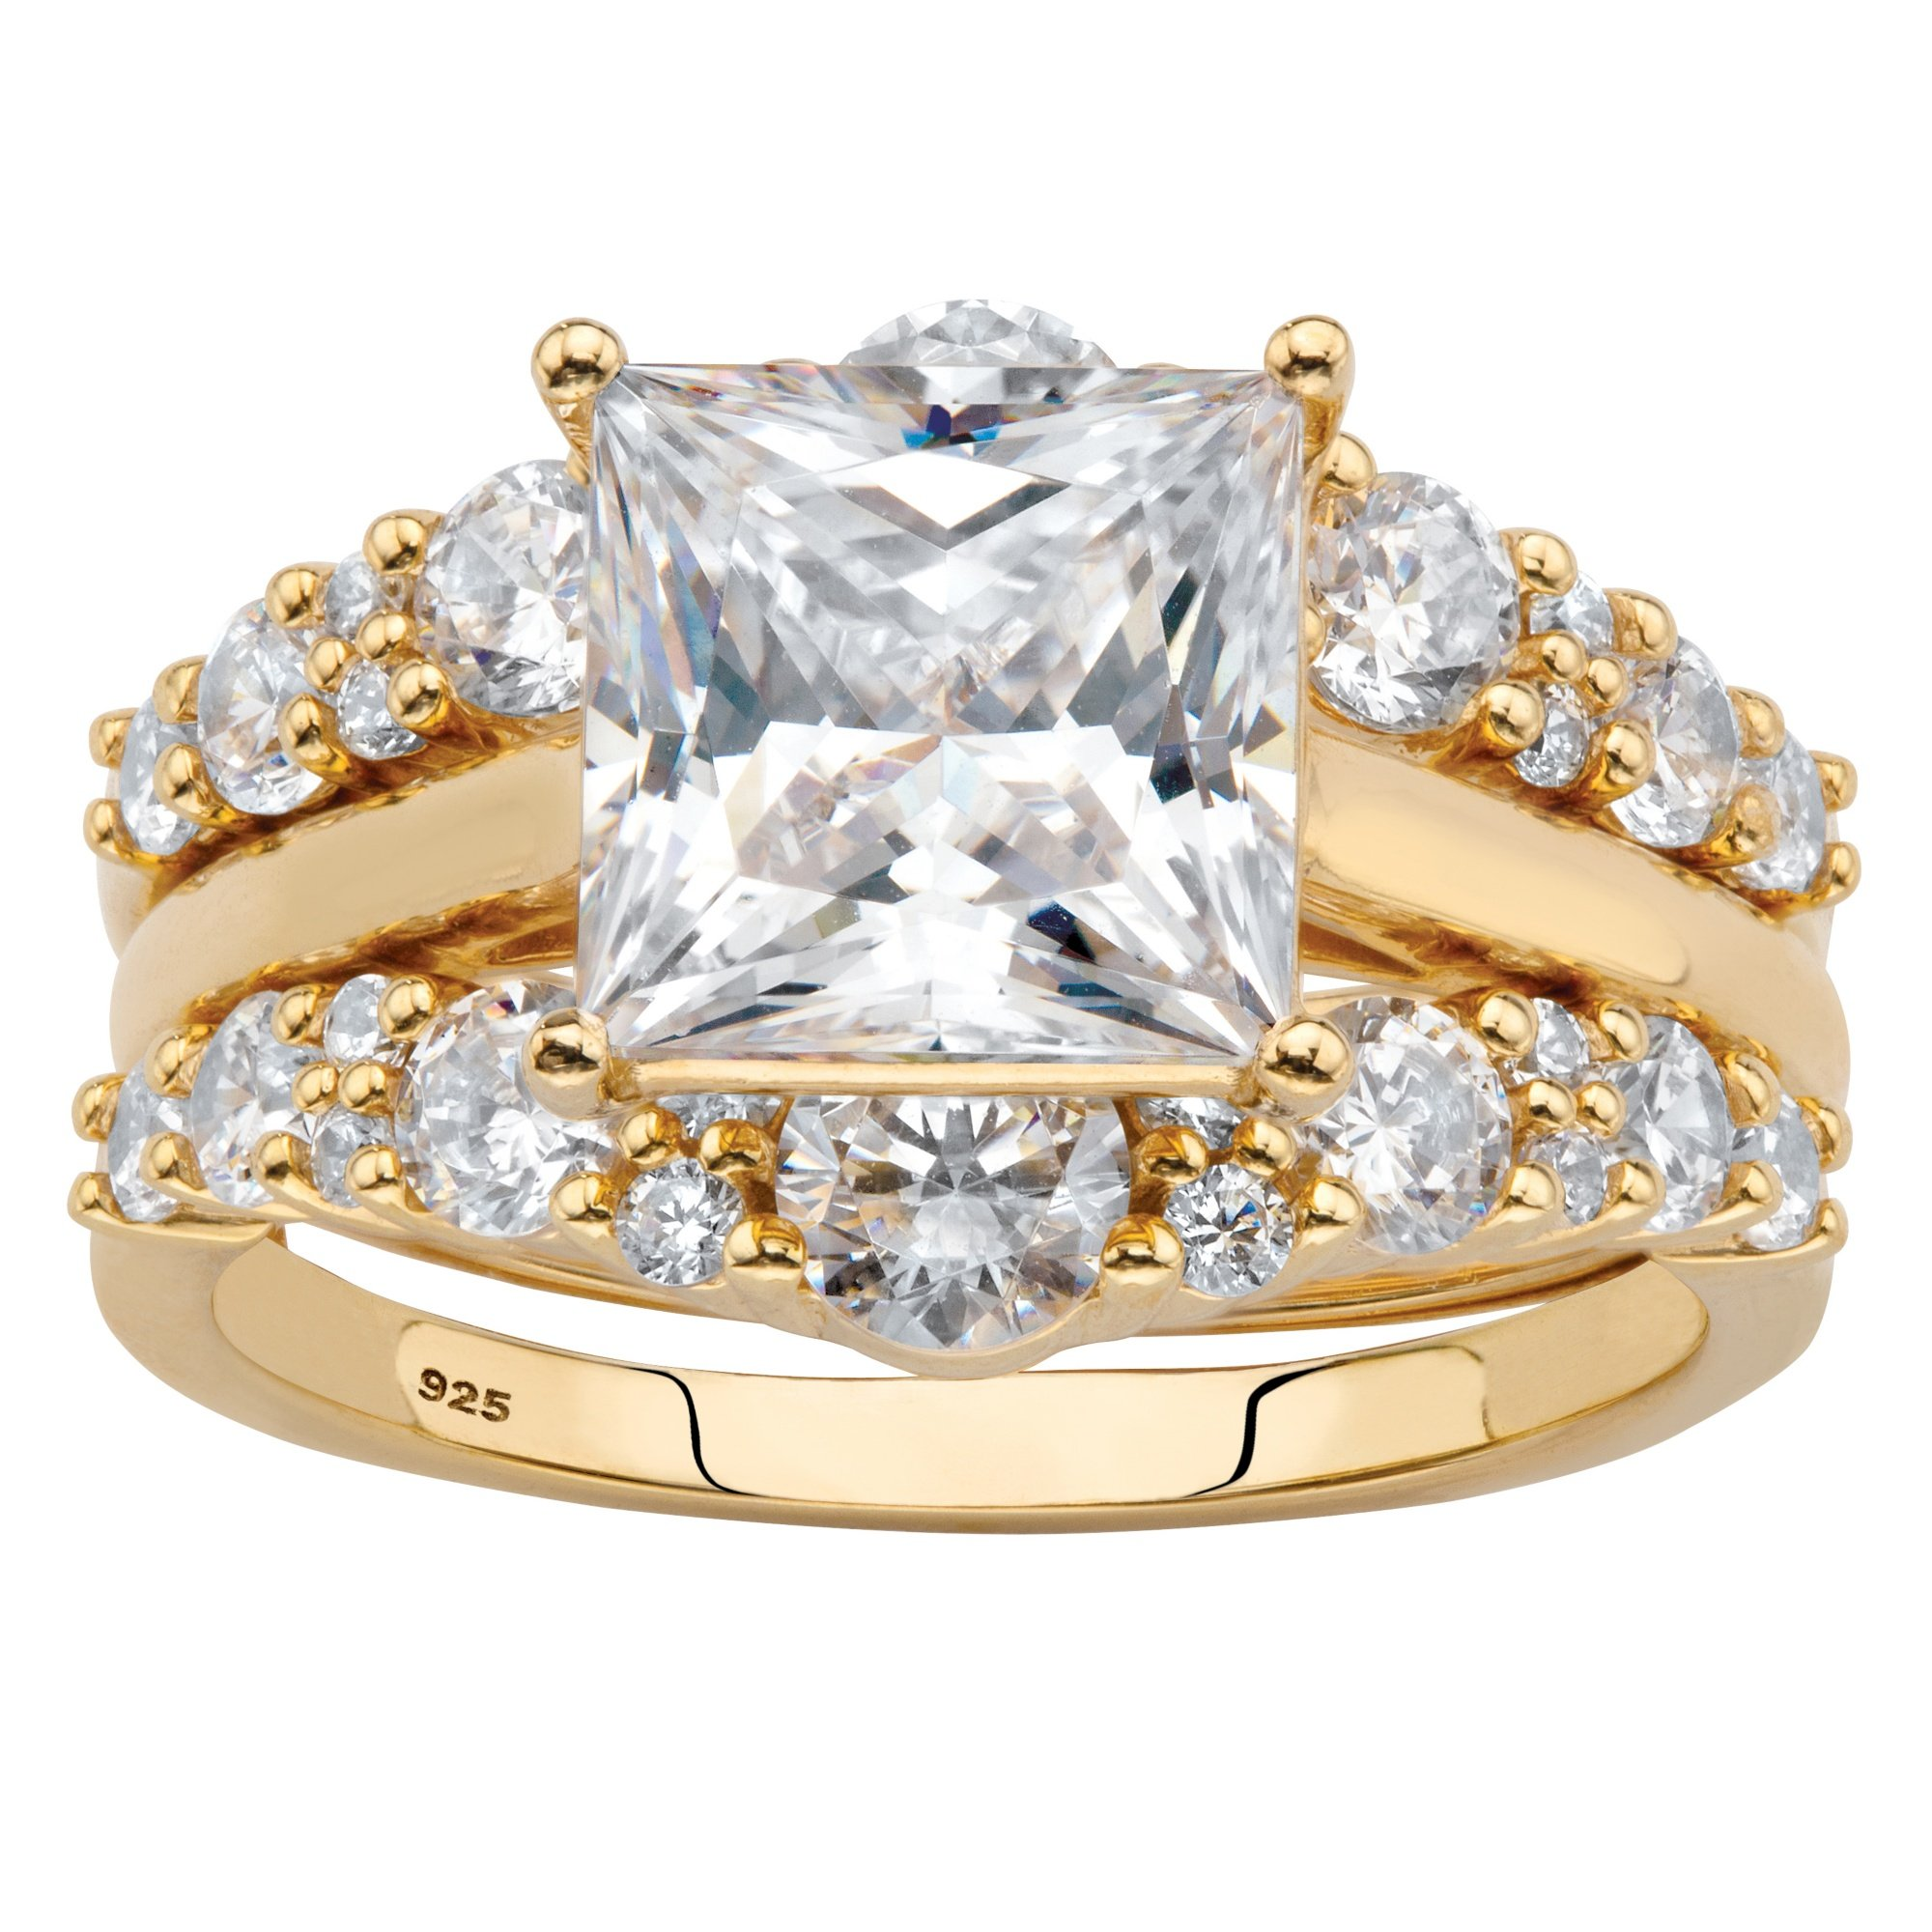 18K Yellow Gold over Sterling Silver Princess Cut Cubic Zirconia Jacket Bridal Ring Set Size 7